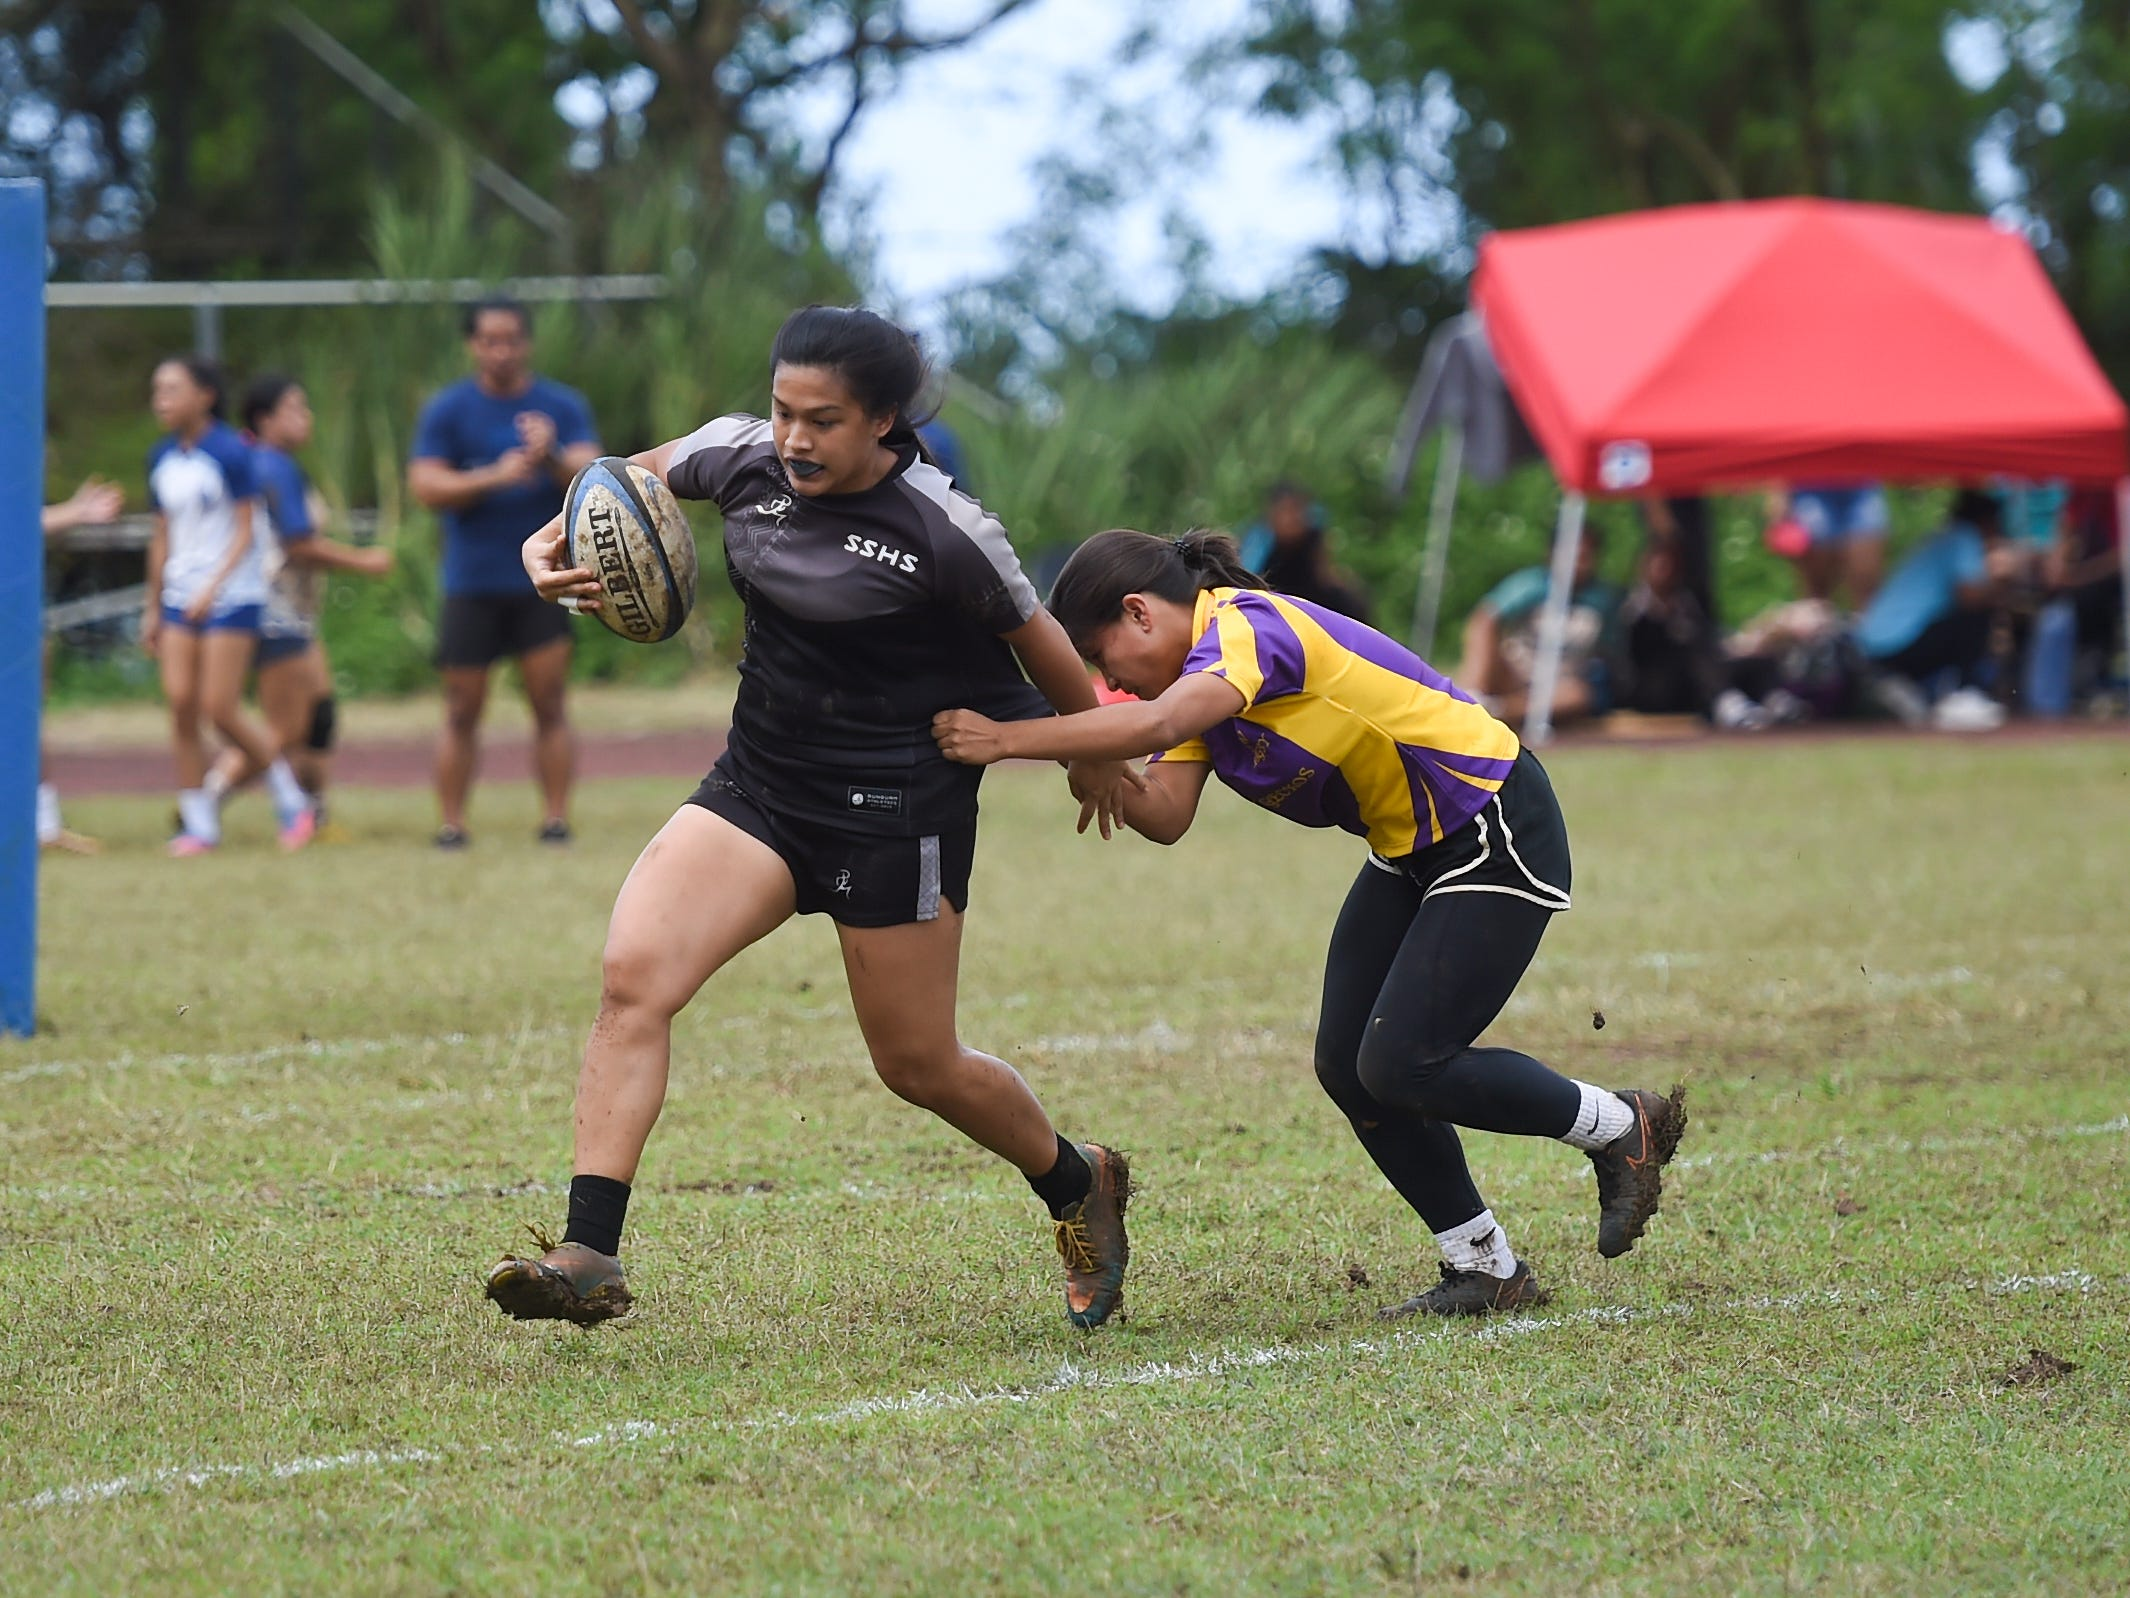 Simon Sanchez player T'anna Dela Cruz attempts to elude a Geckos defender during their IIAAG Girls' Rugby match at the Southern High School Field, Feb. 9, 2019.